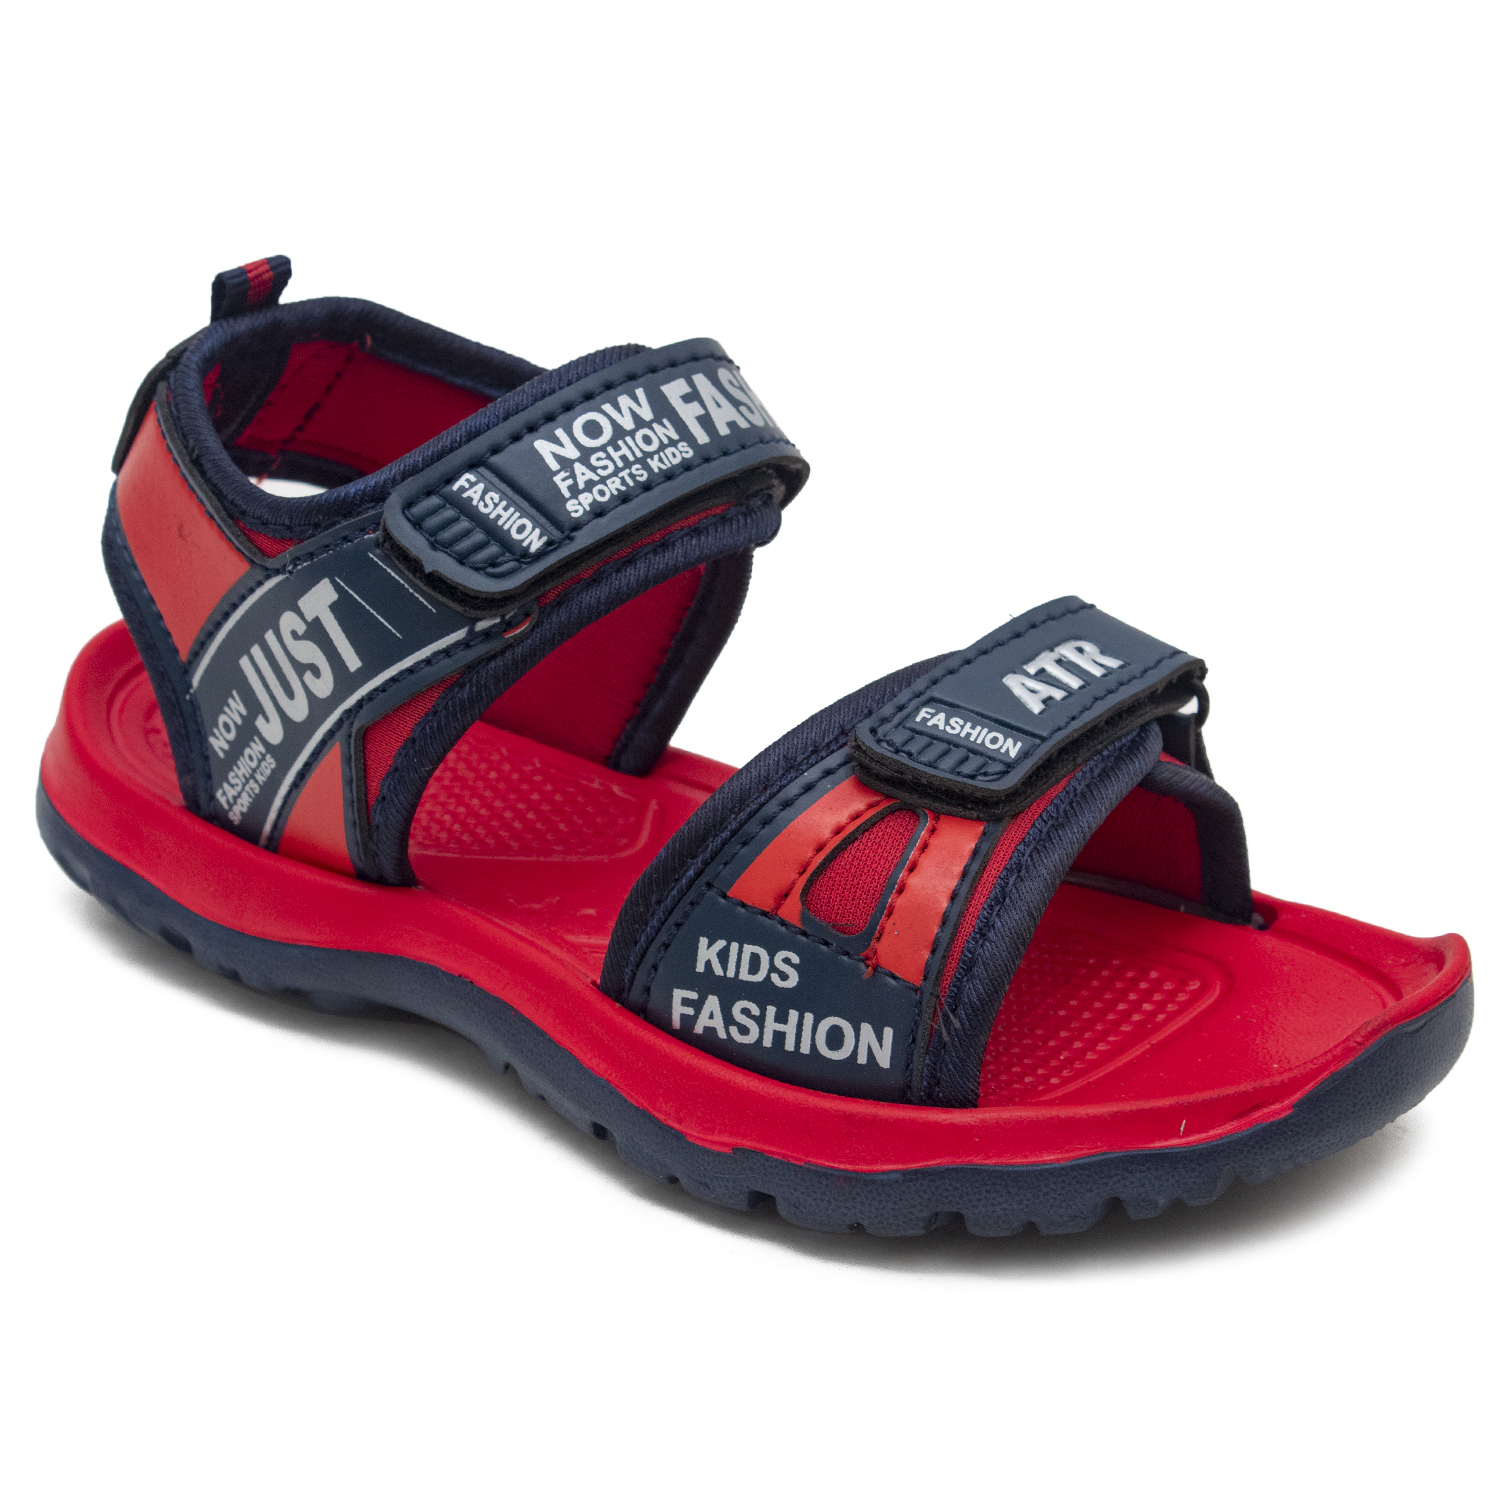 Fancy Sports Sandals For Kids FT-MSERIES1_Red (RED,5-10,10 PAIR)